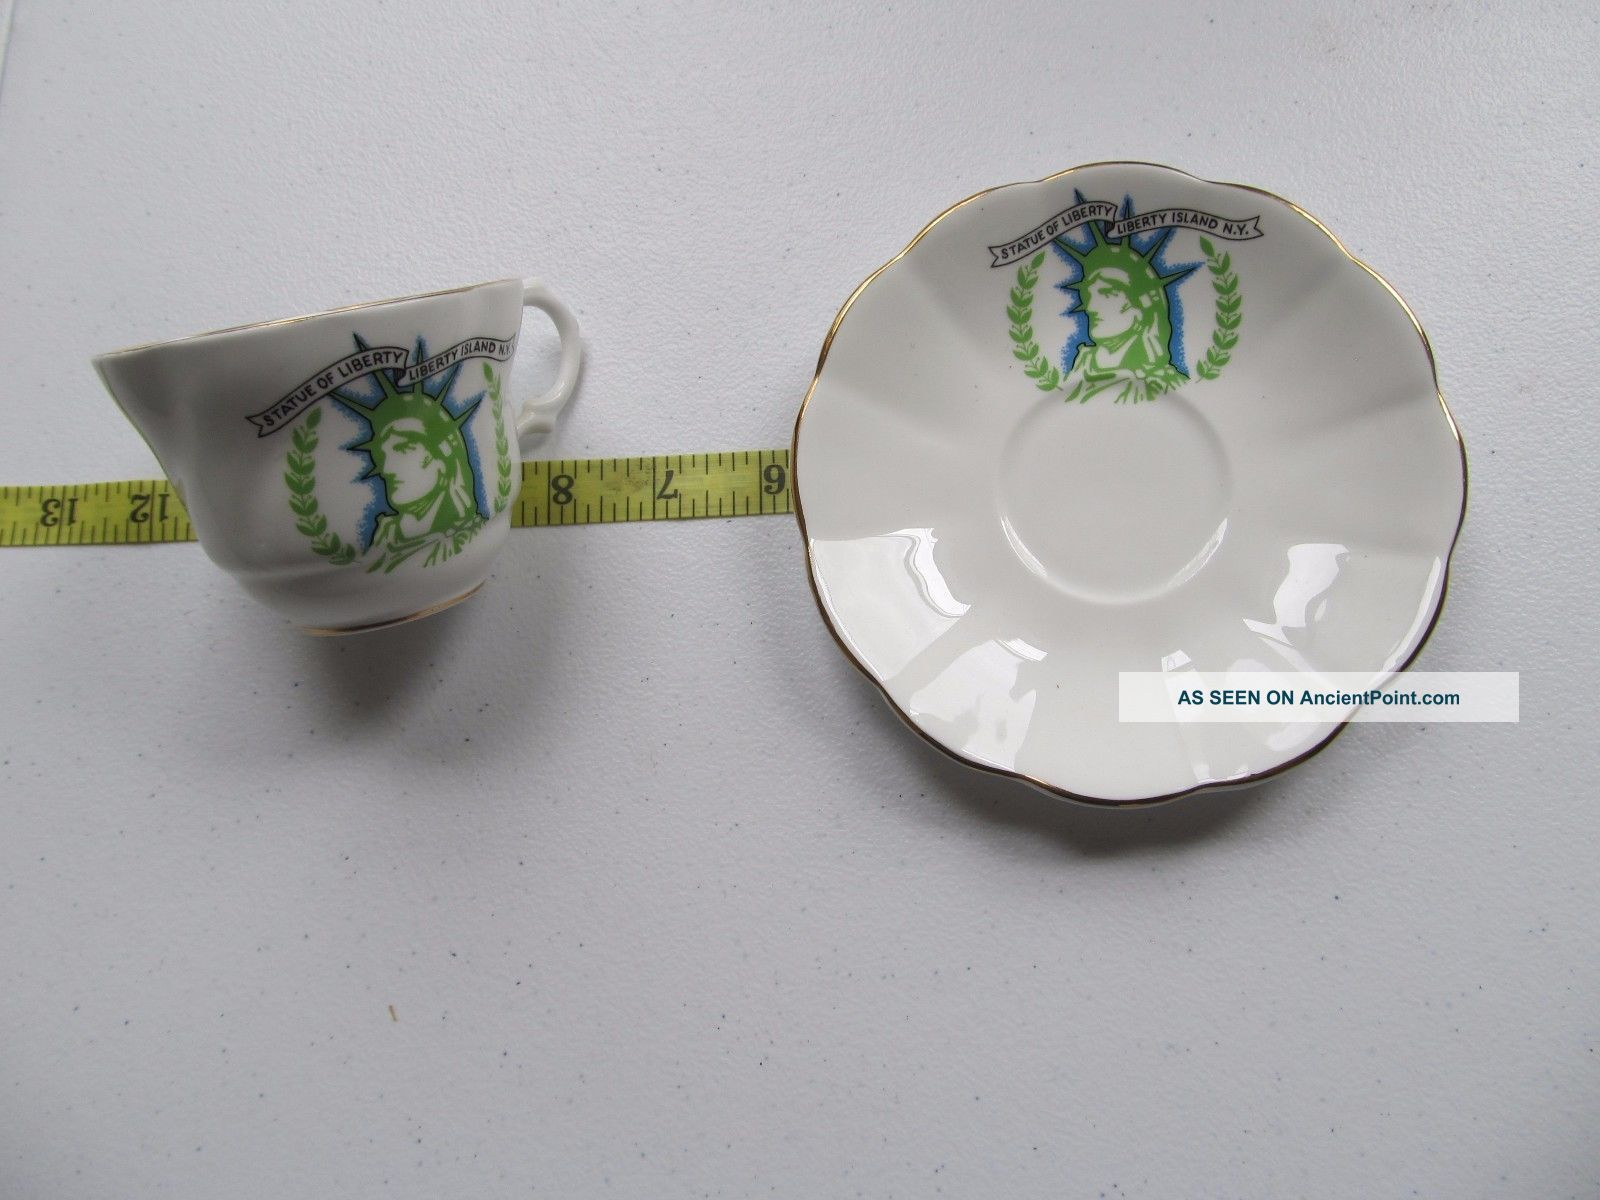 Vintage Statue Of Liberty Ny Fine Bone China Porcelain Tea Cup & Saucer Guc Cups & Saucers photo